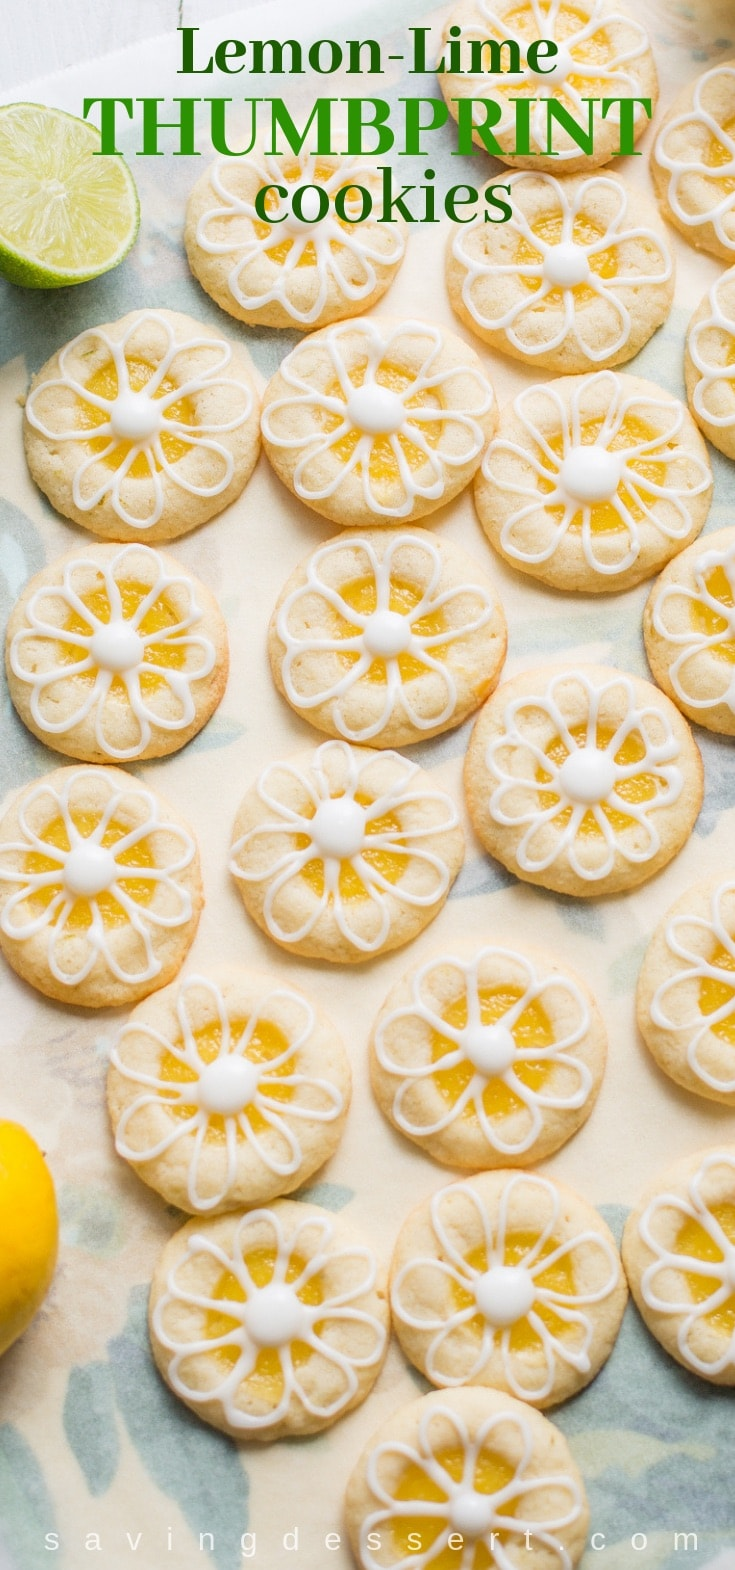 Lemon-Lime Shortbread Thumbprint Cookies filled with homemade Lemon Curd and topped with a simple Lime Icing #thumbprint #cookie #lemonlimecookies #lemoncookies #limecookies #baking #thumbprintcookies